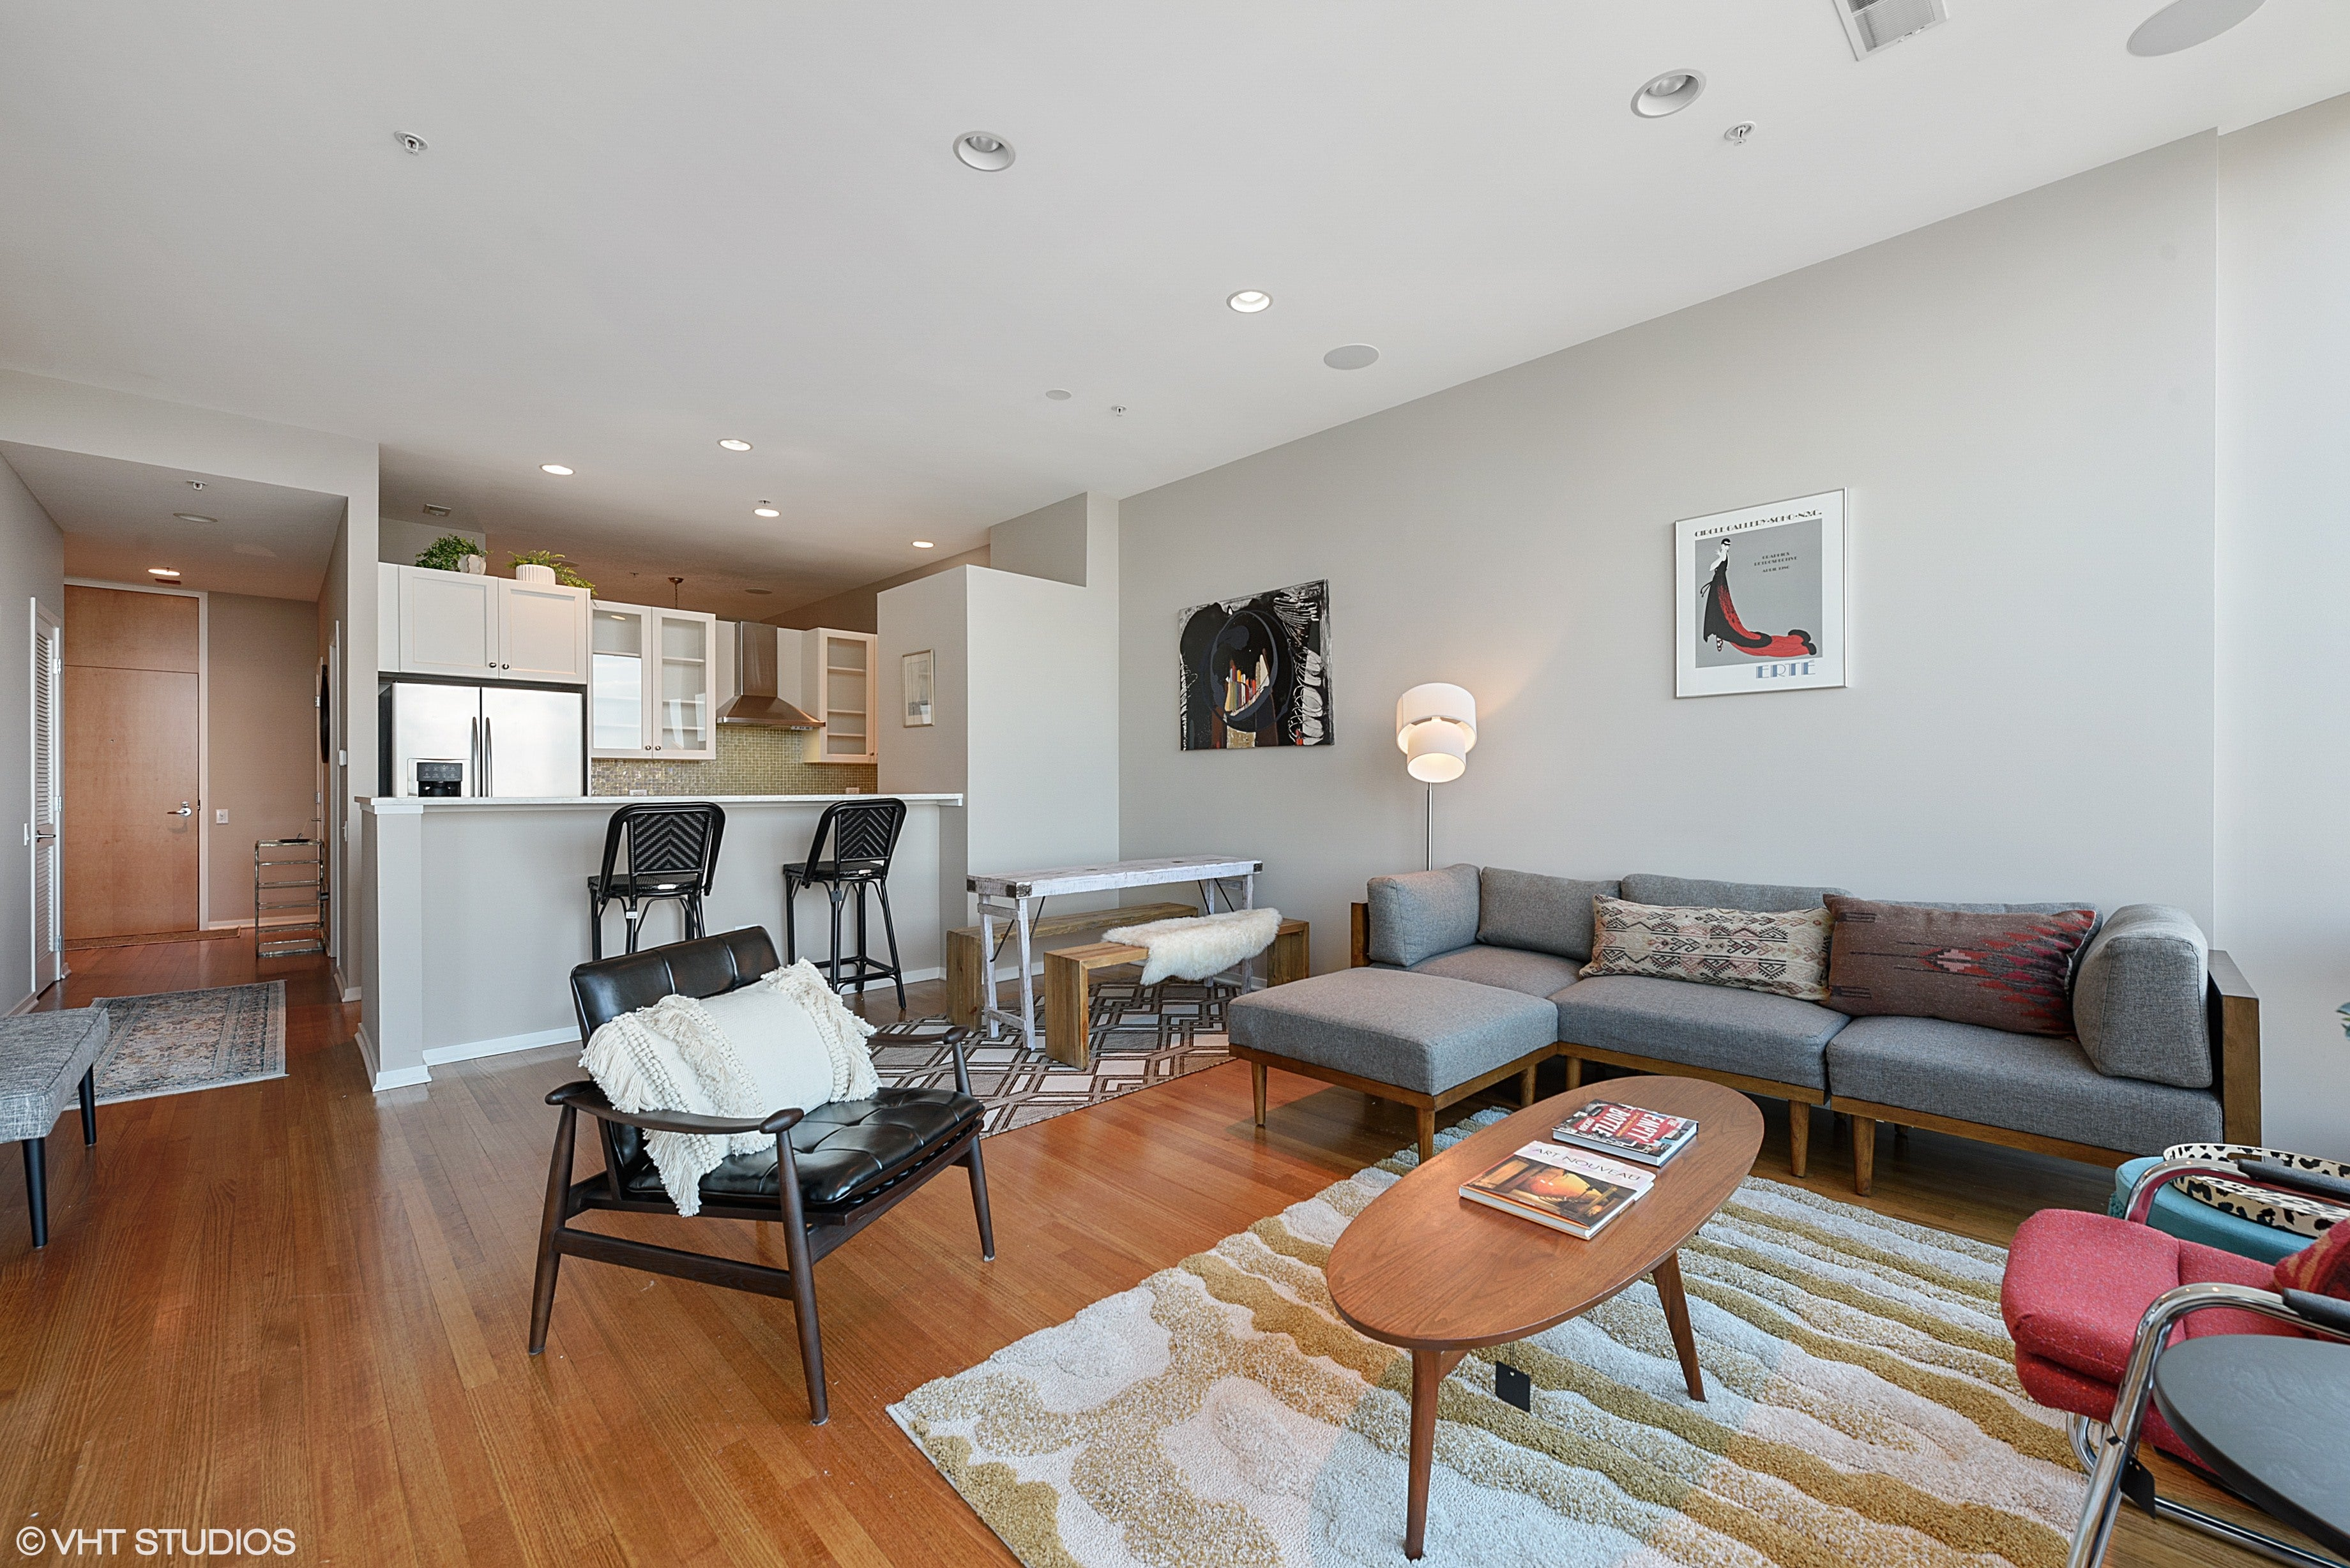 Eskell stages River North Chicago apartments and more luxury homes for sale.